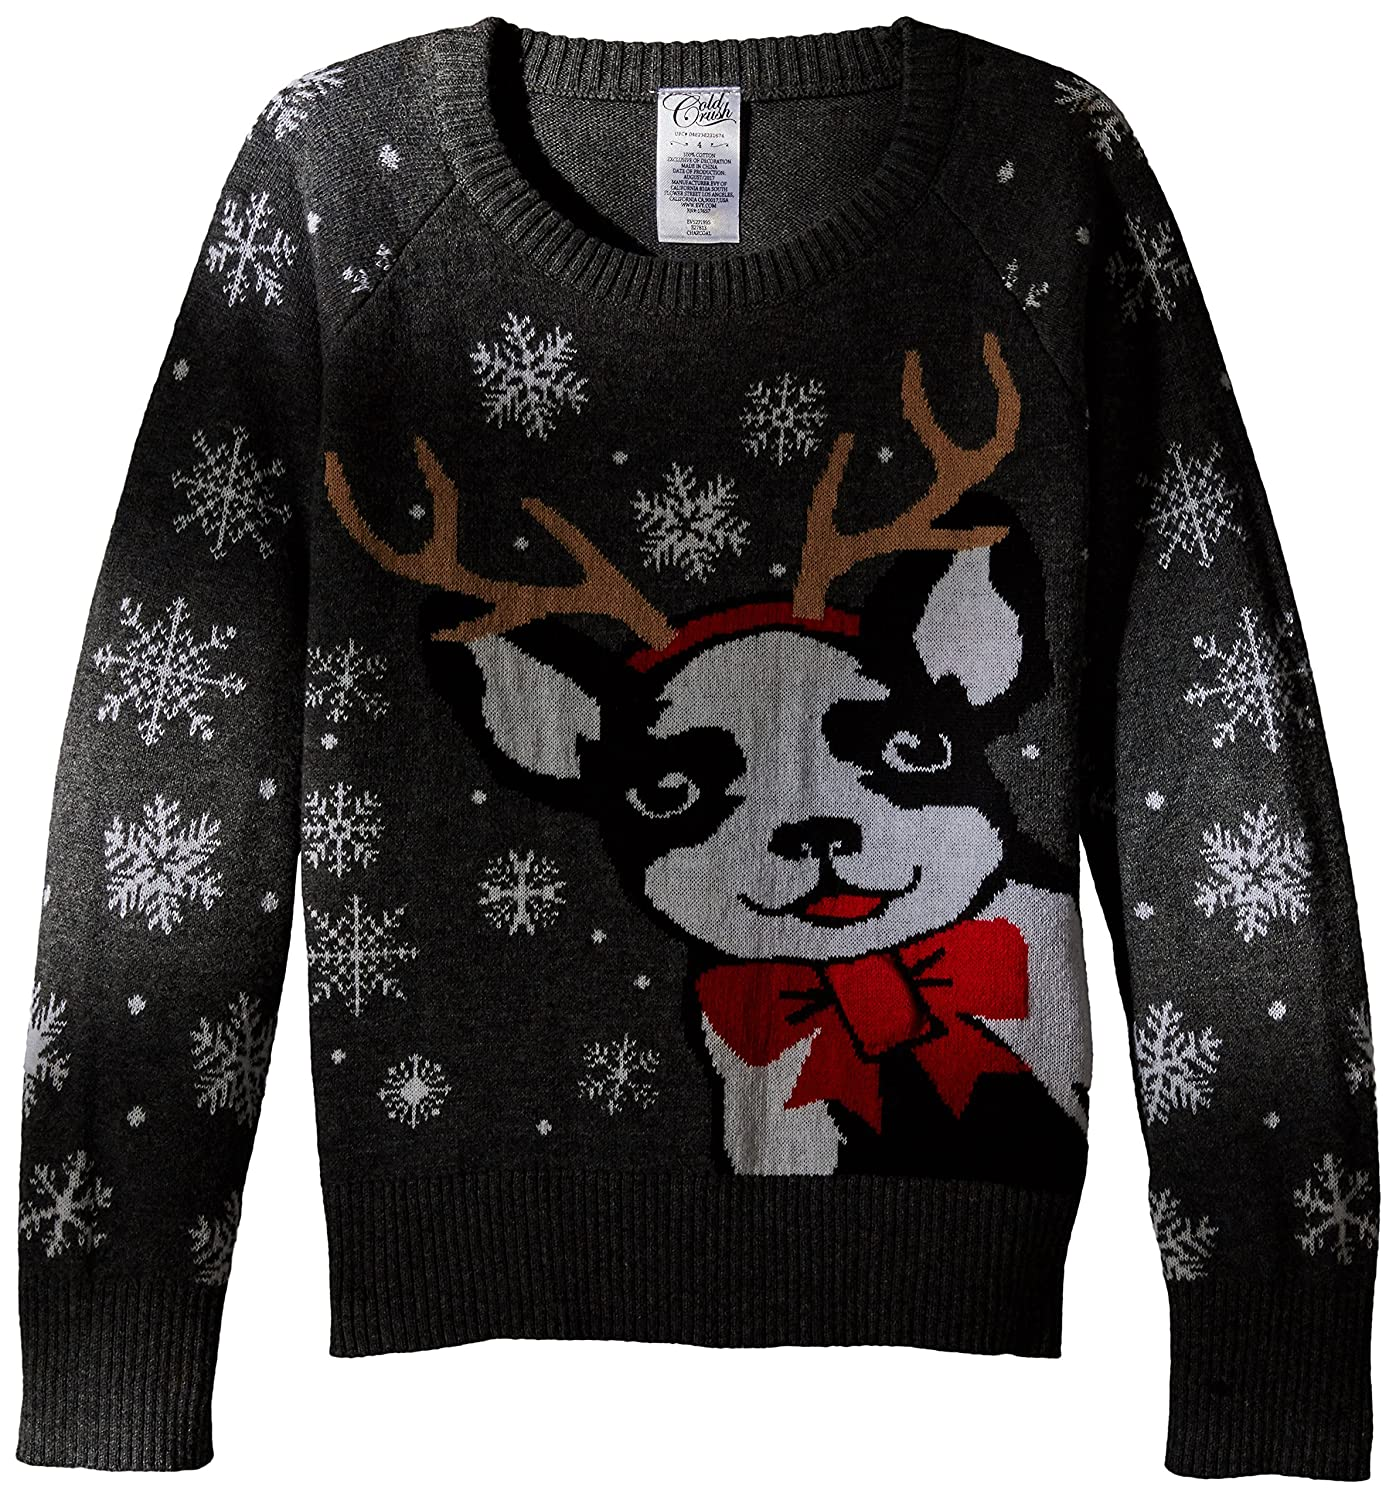 Cold Crush Girls' Antler Puppy with Bow Holiday Sweater Evy Children's Apparel EV5231895 EV1231896